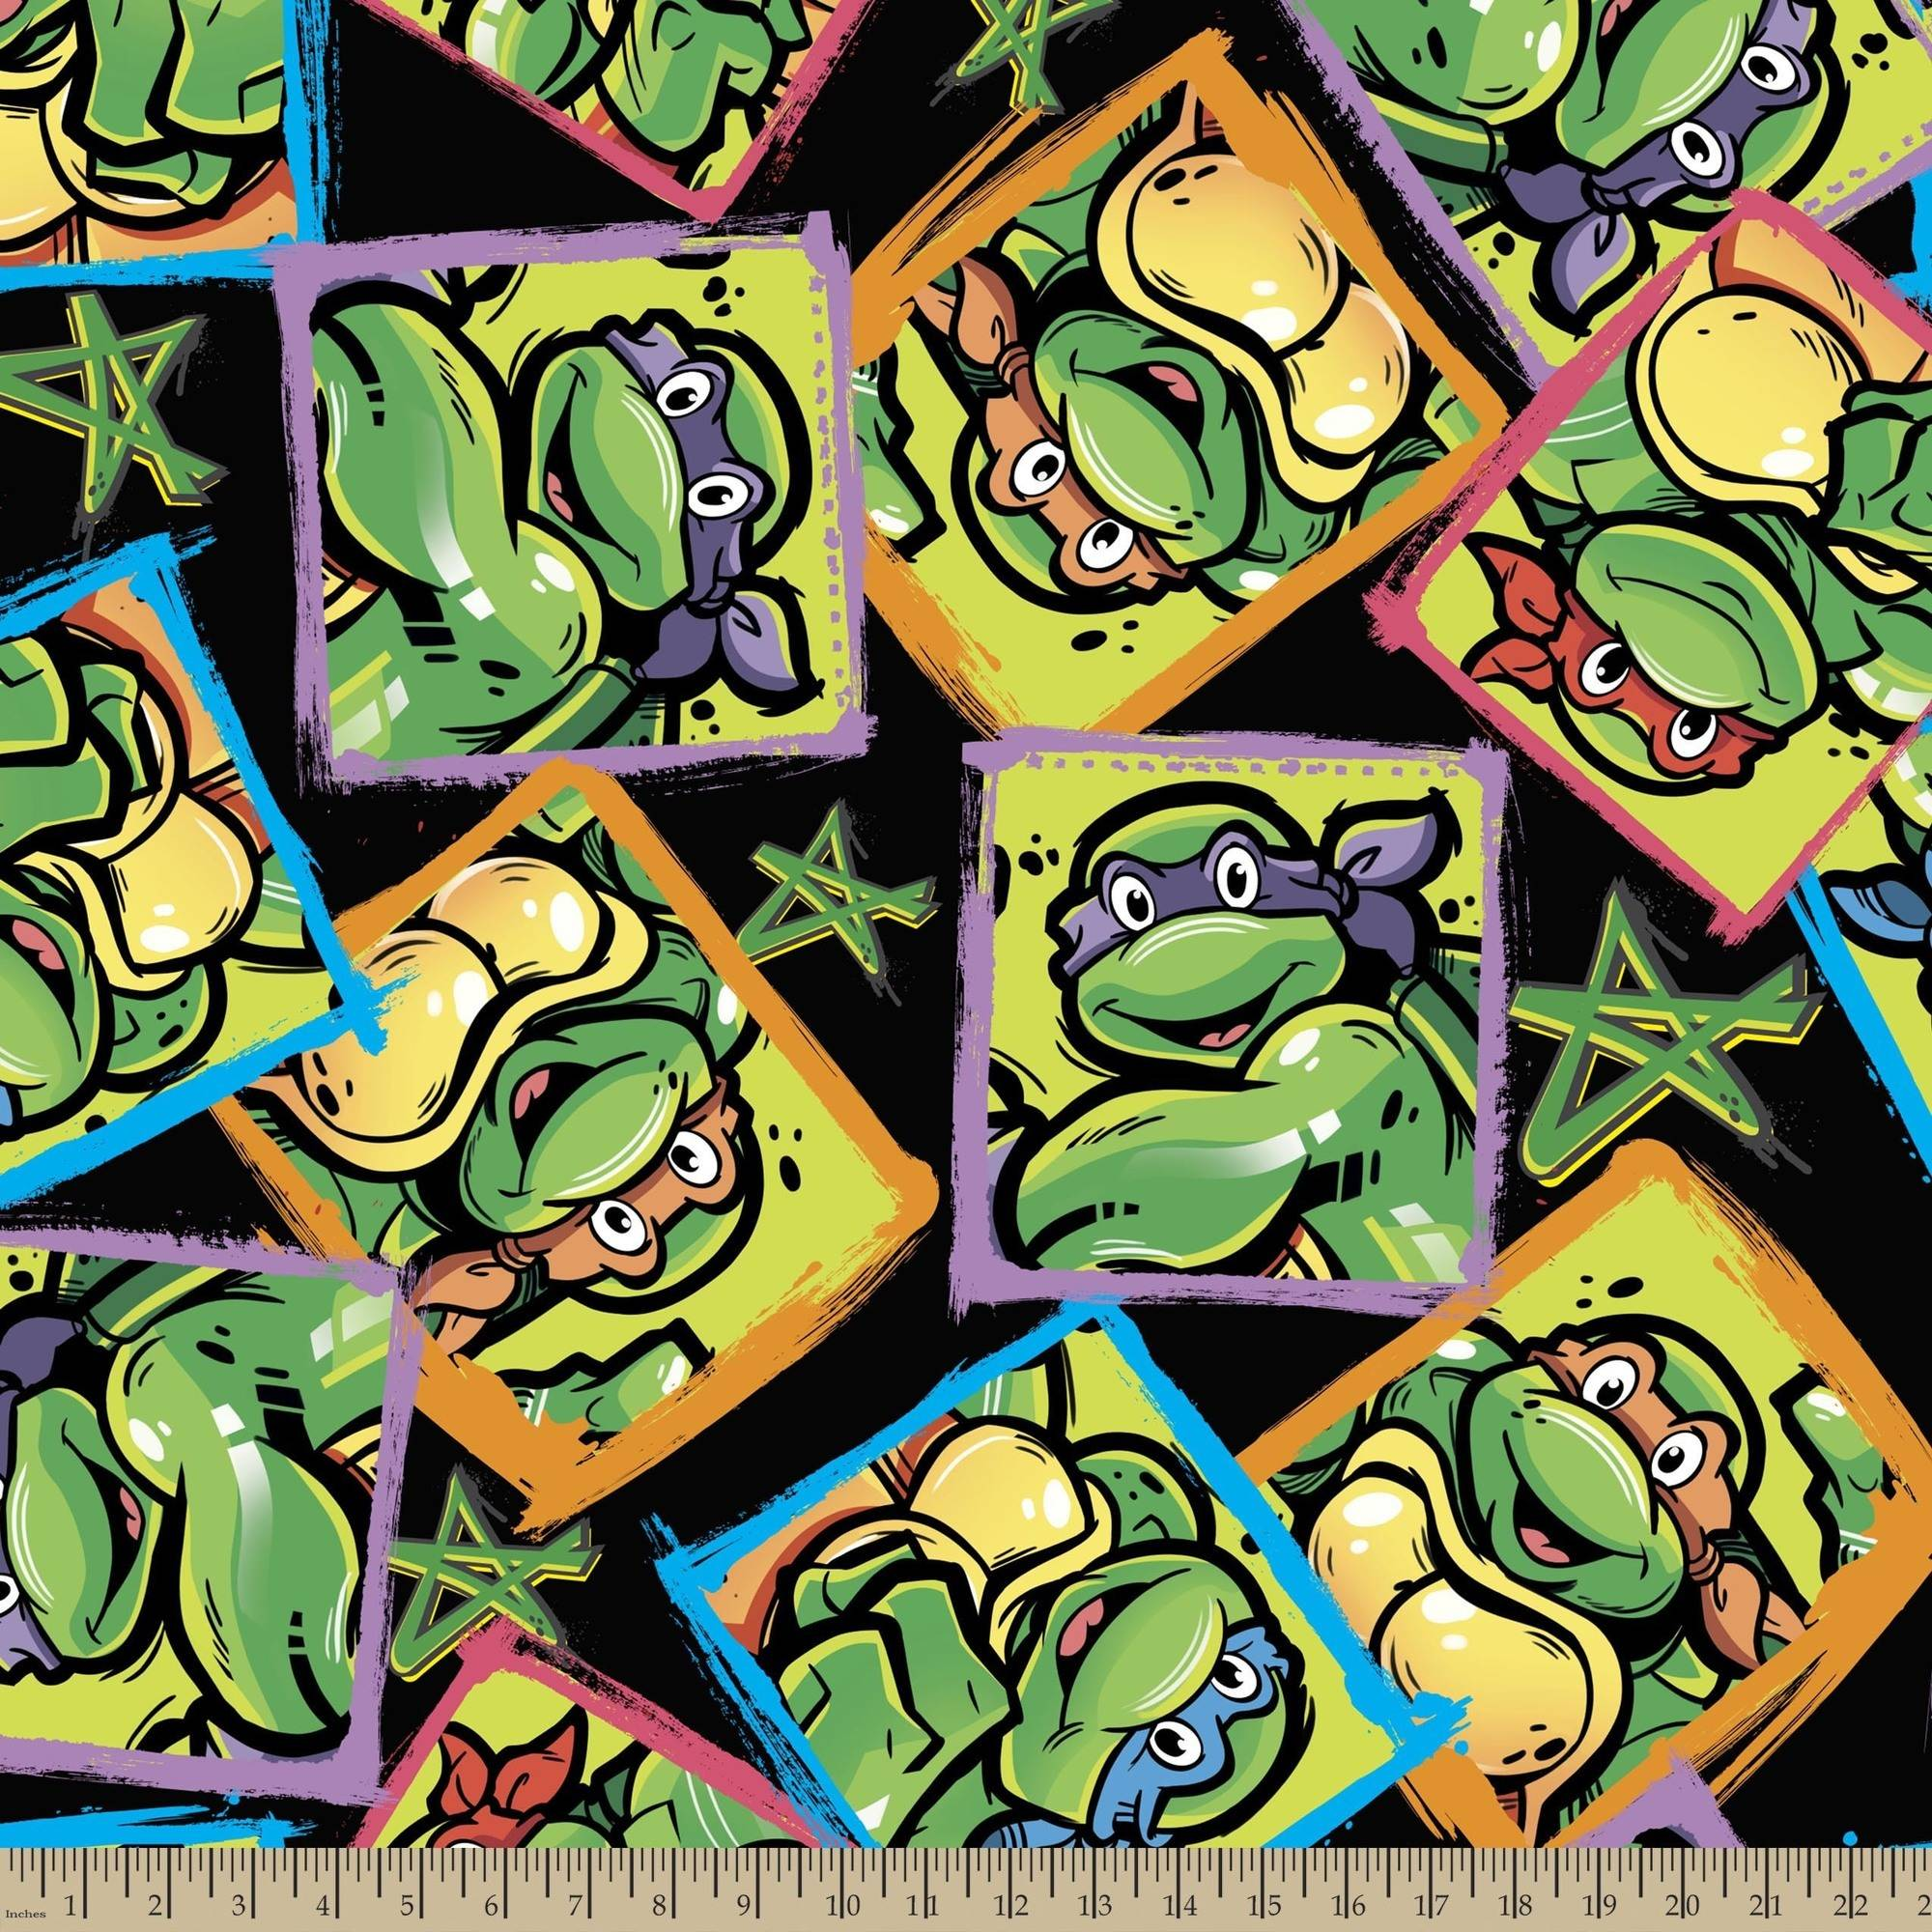 "TMNT Turtles and Stars Fleece, 59/60"" Width, Fabric by the Yard, Black"